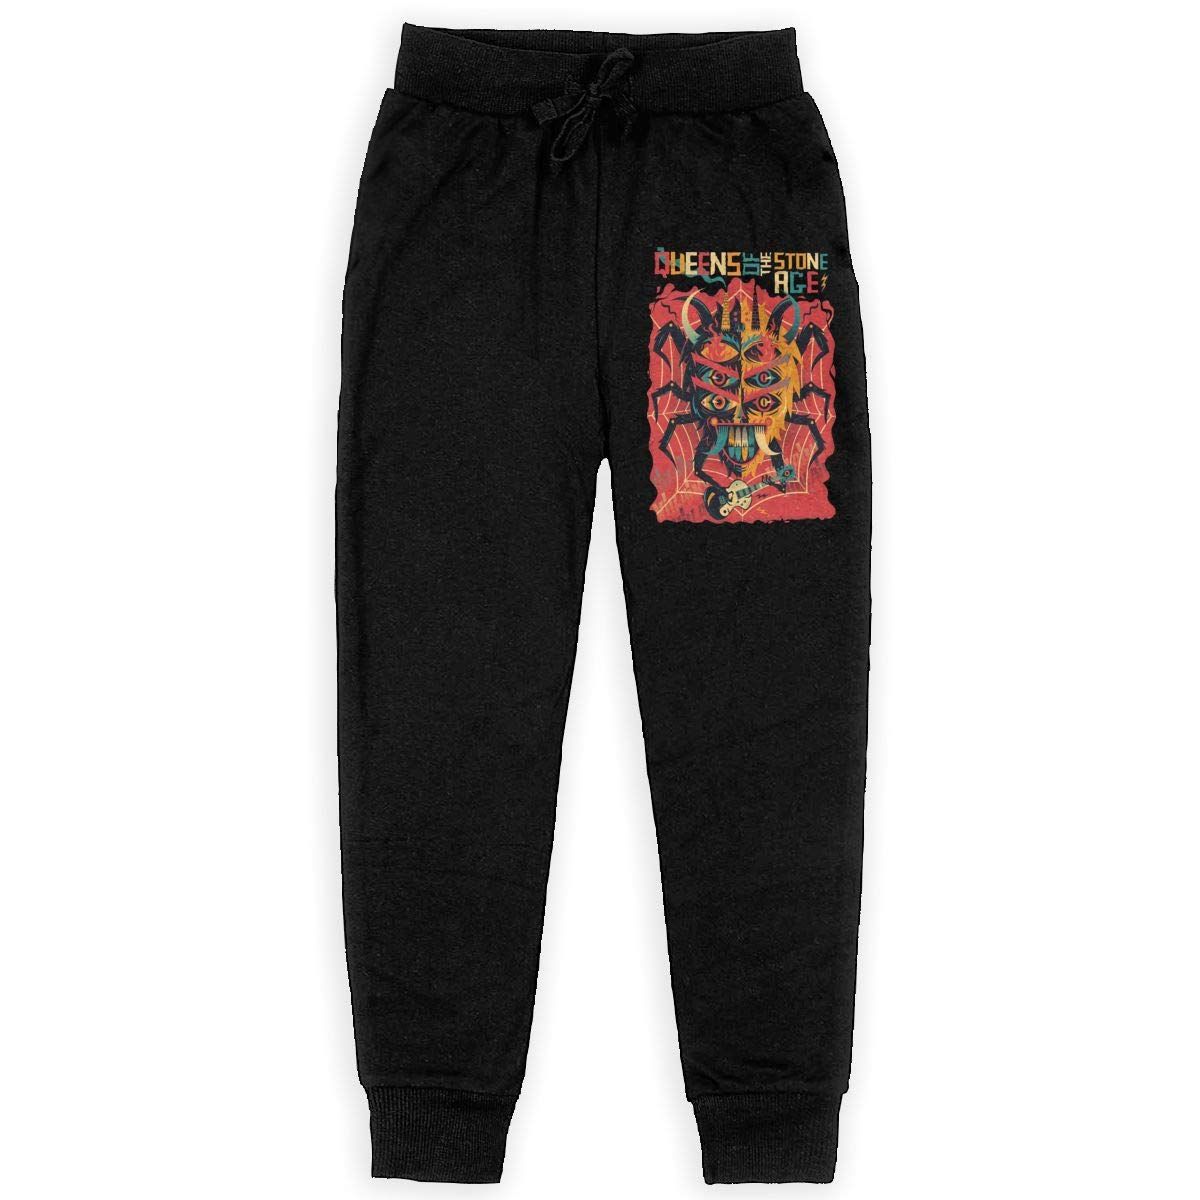 Unisex Young Queens of The Stone Age Elastic Music Band Fans Daily Sweatpants for Boys Gift with Pockets